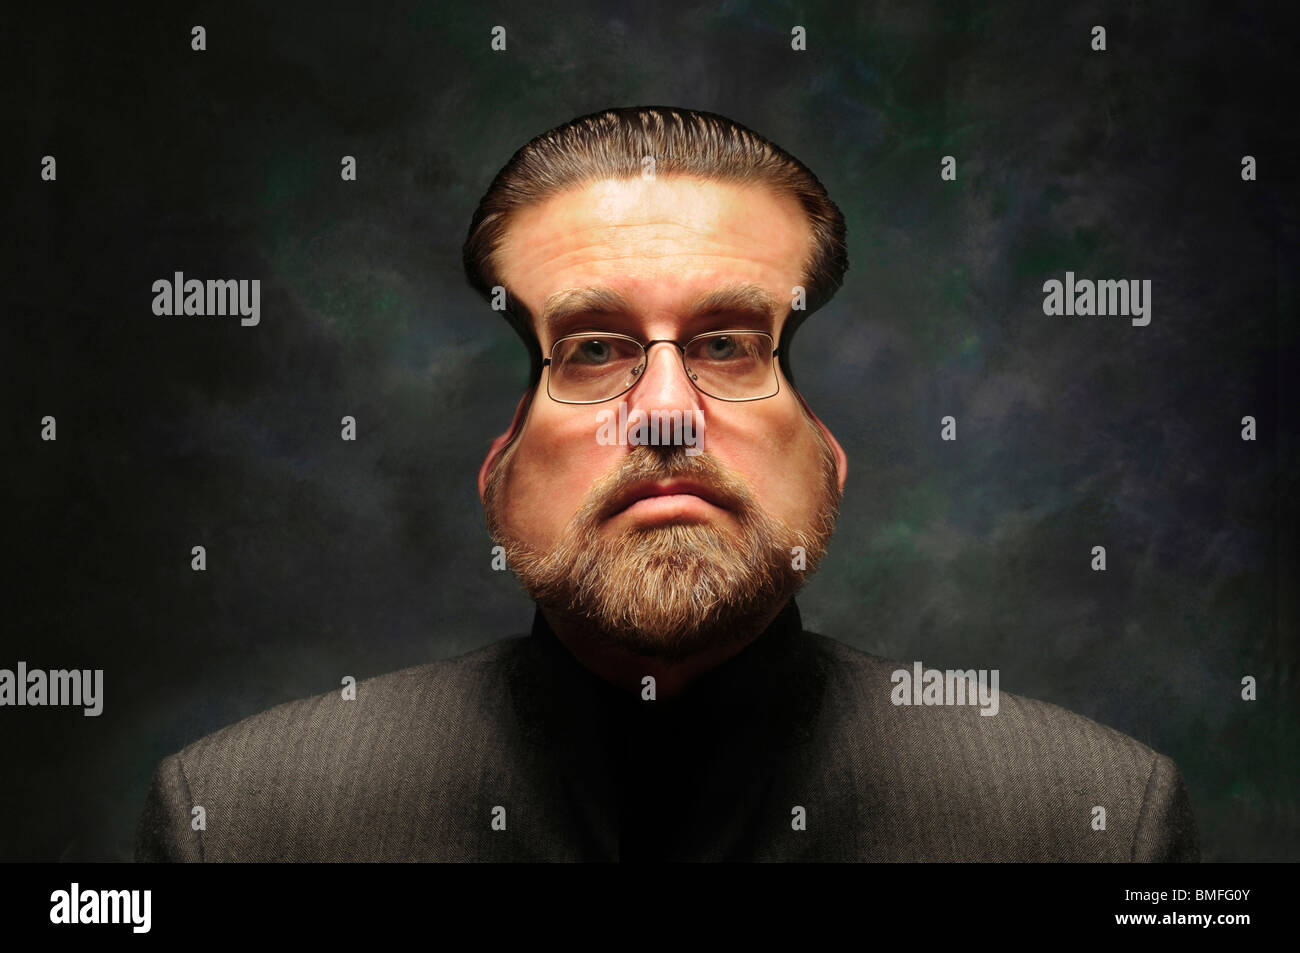 Man with squeezed face distorted with glasses and beard Stock Photo